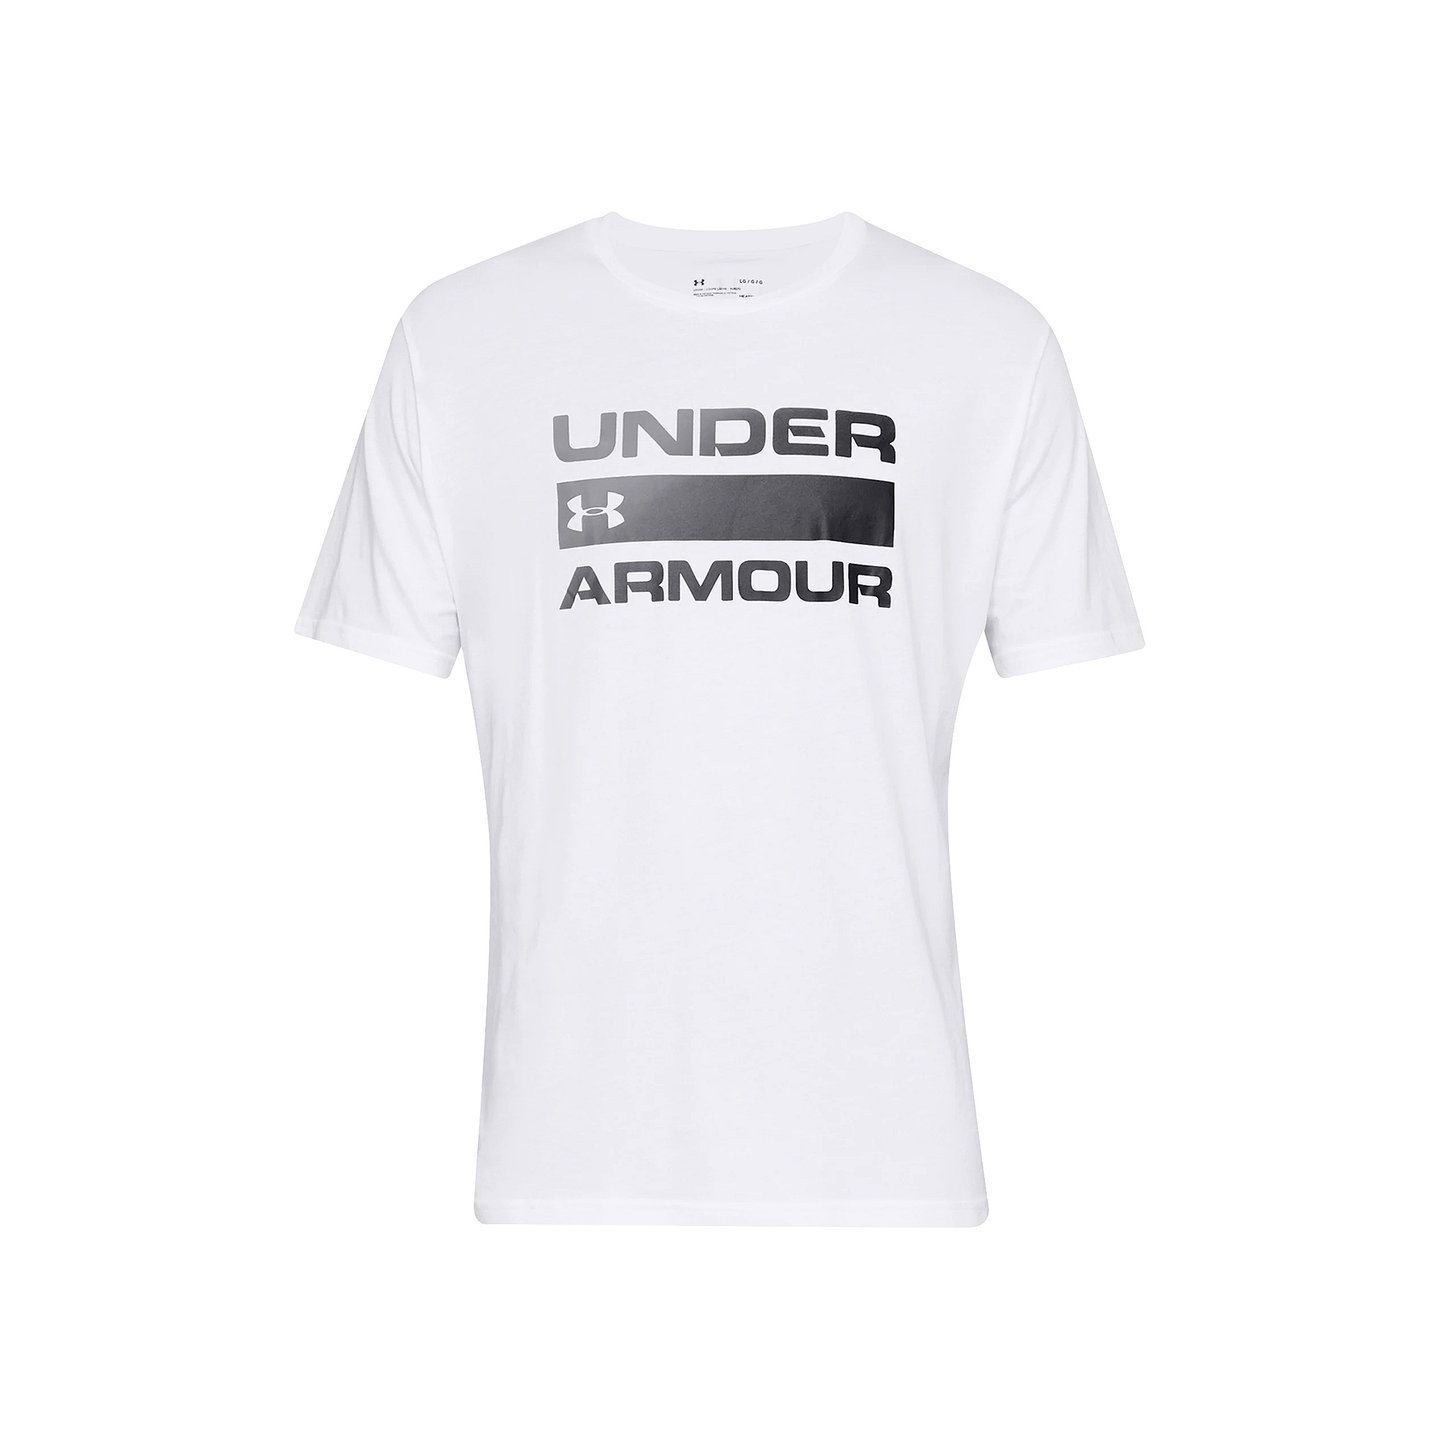 Under Armour - Áo thun nam Tee Team Issue Wordmark Training SS21-1329